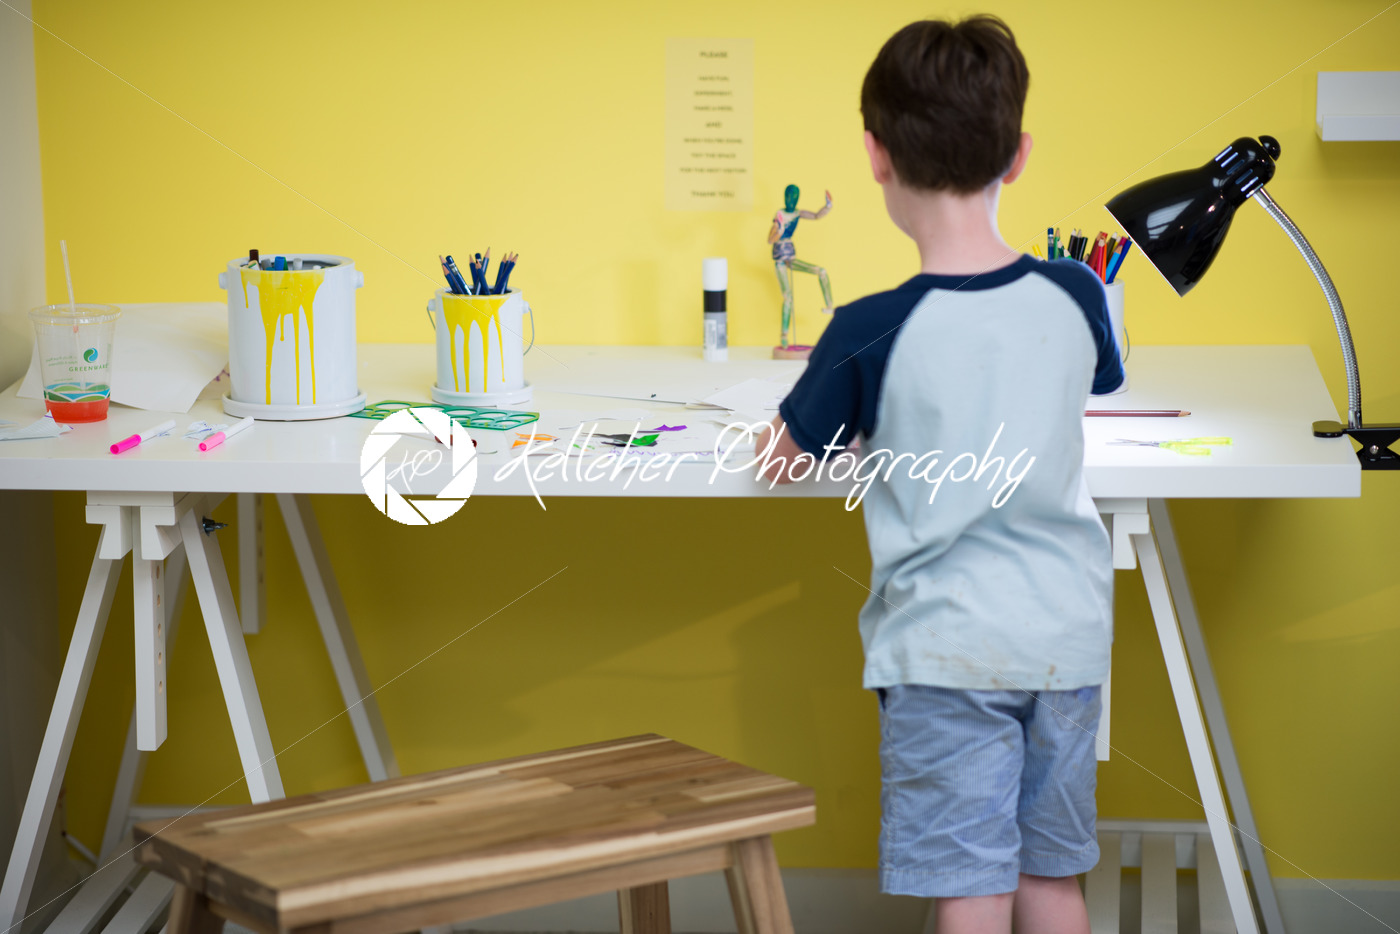 Young boy painting at desk - Kelleher Photography Store